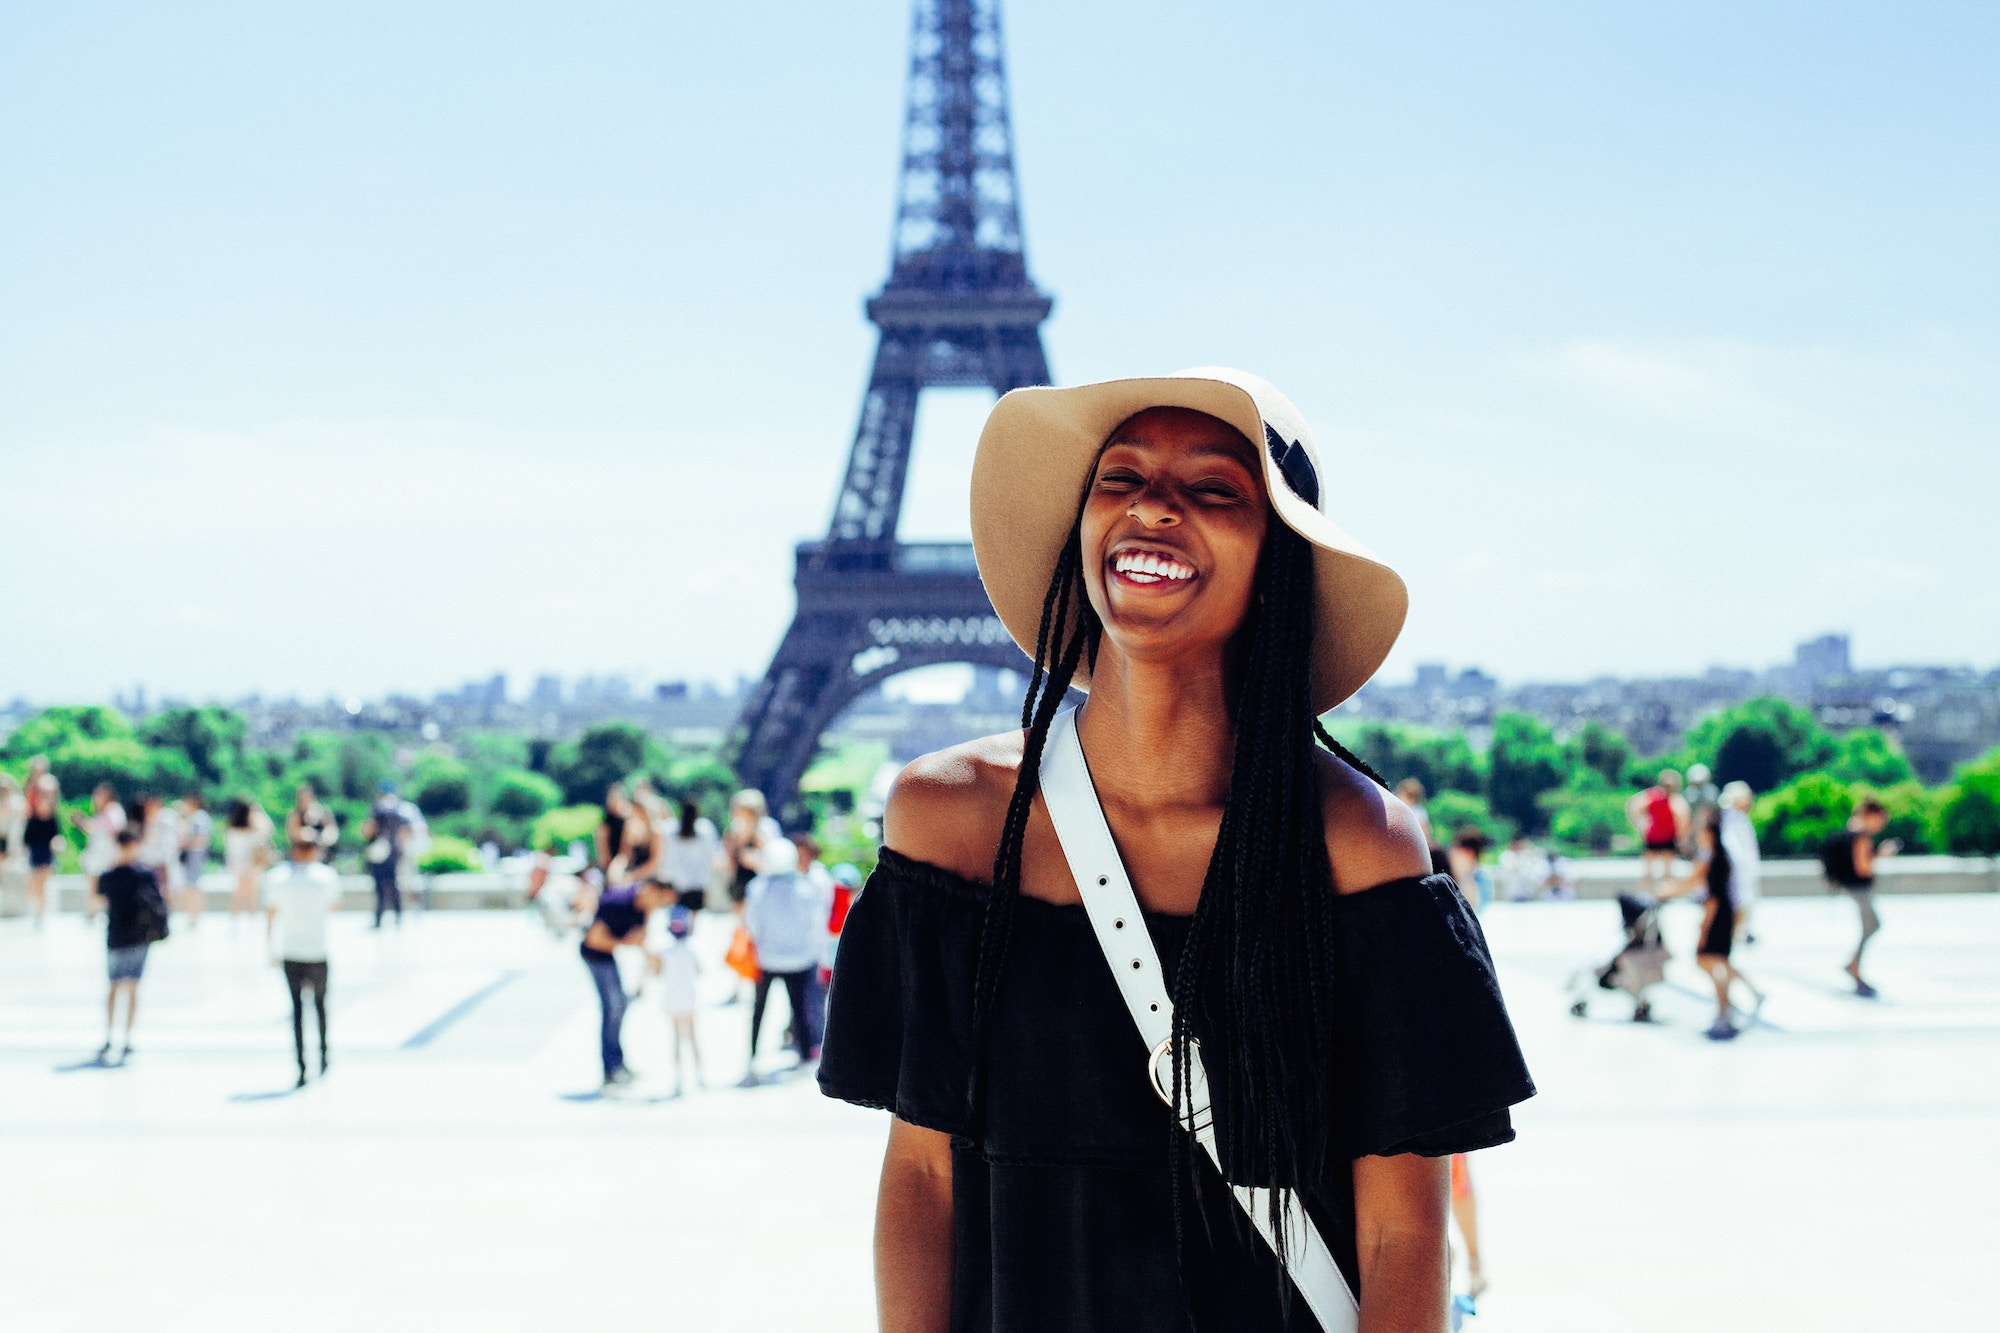 HiP Paris Blog rounds up the top French podcasts, which gives you some sense of the cultural landscape in the country, and can even be quite funny and make you laugh, like this black girl smiling happily in summer in Paris as she poses in front of the Eiffel Tower at Trocadero.